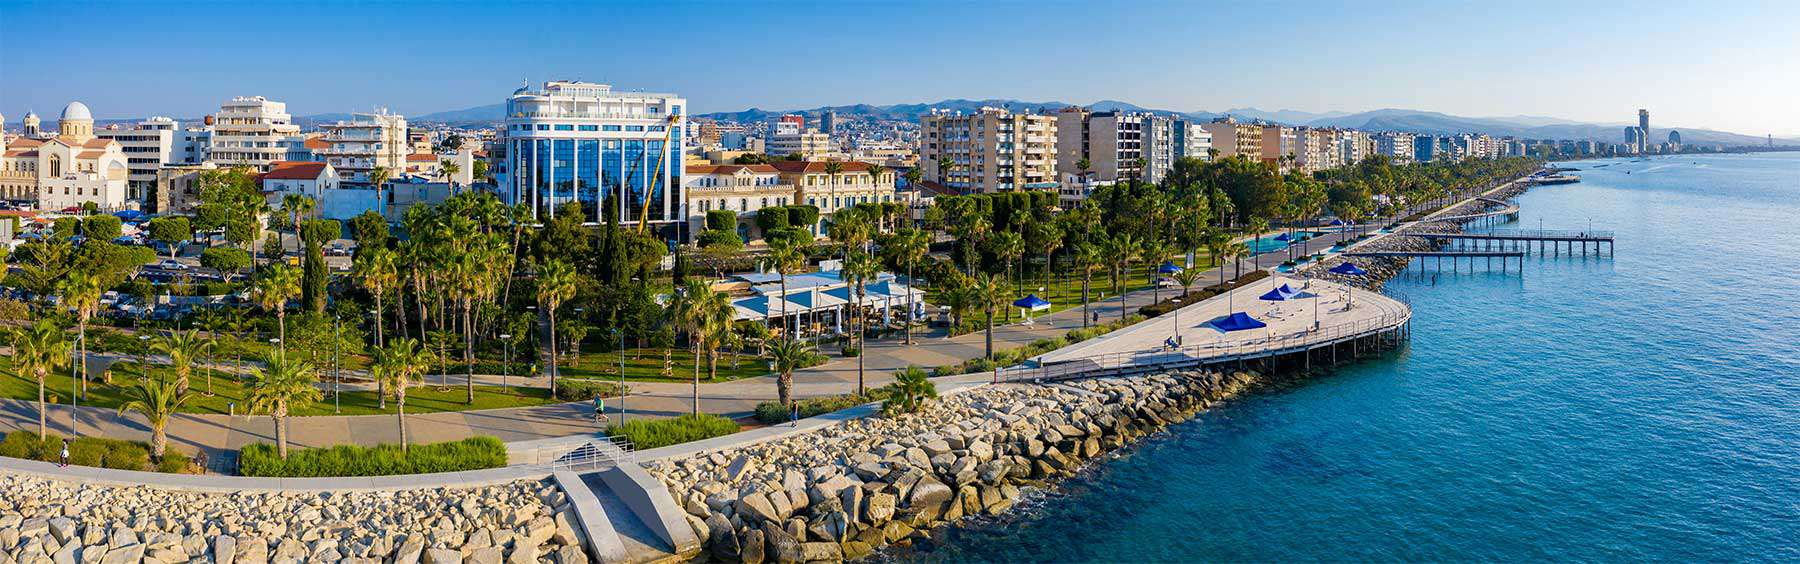 Best places to live in Cyprus: Seafront views of Limassol in Cyprus